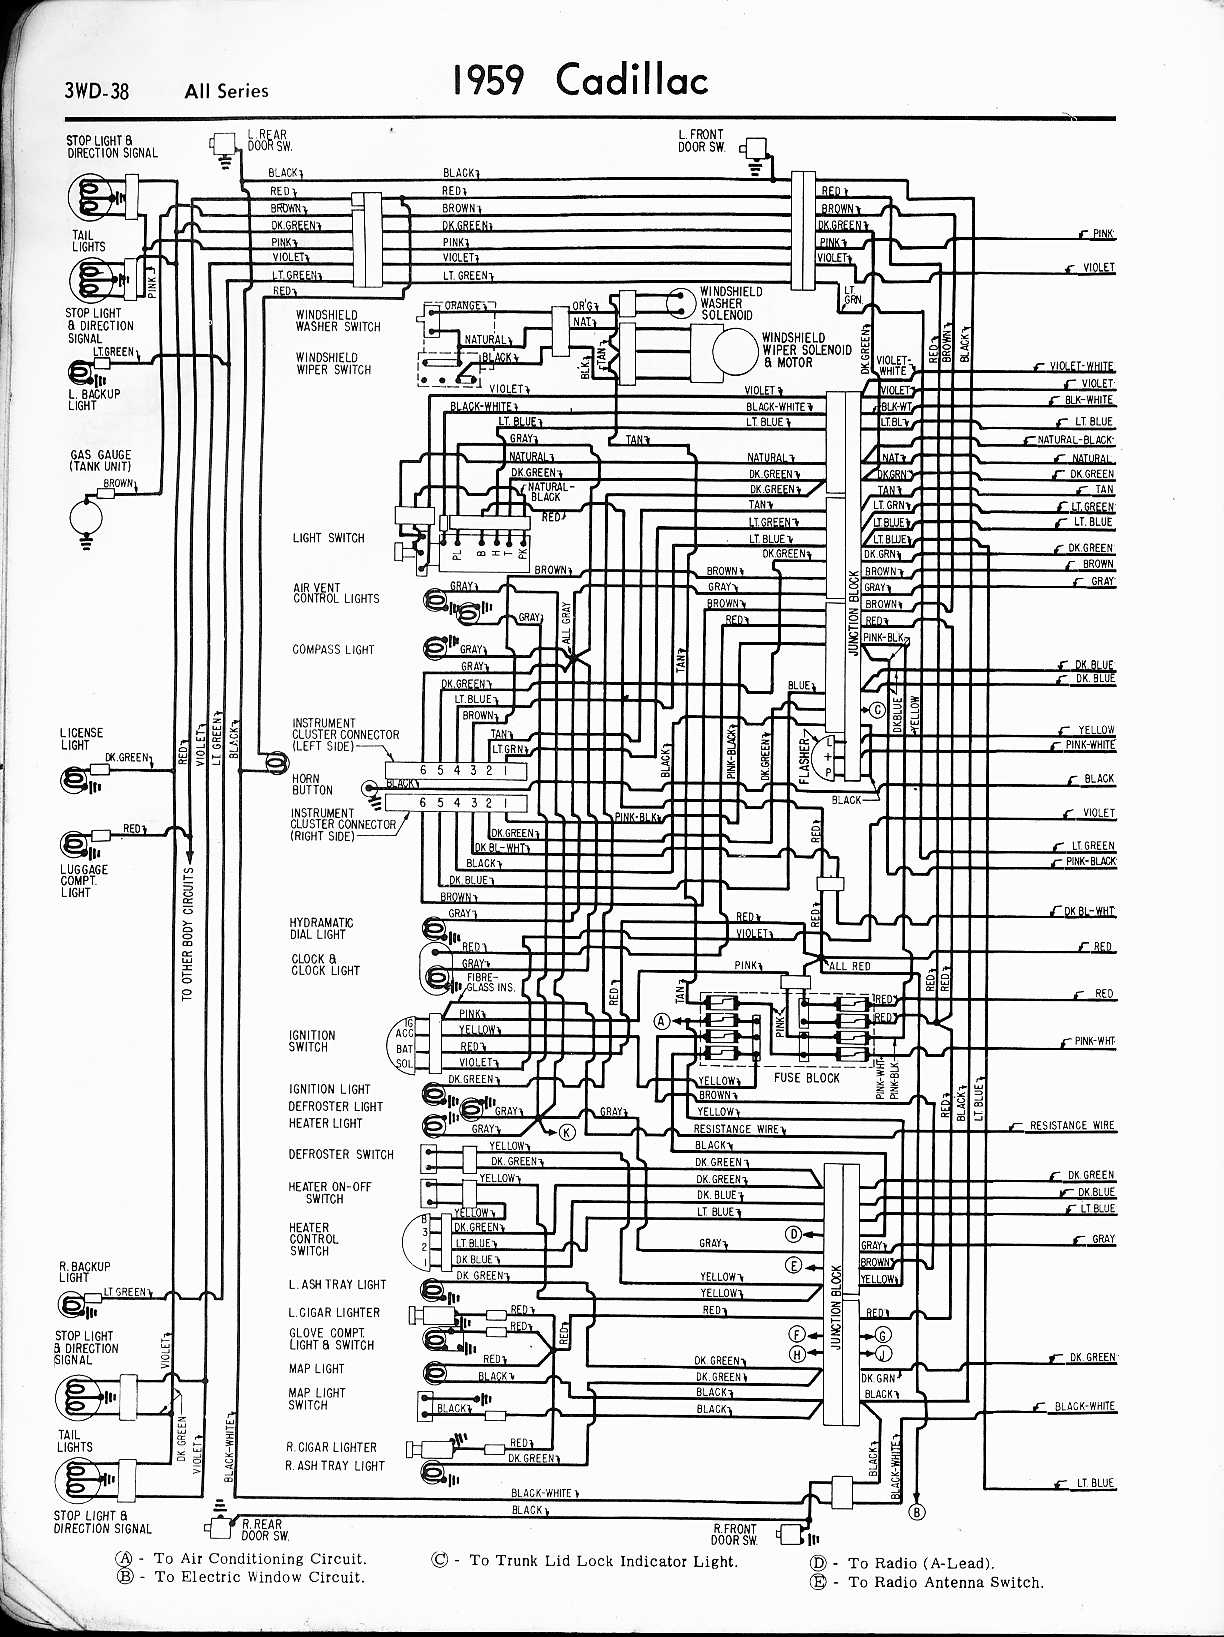 Free Wiring Diagram For 1956 Ford Fairlane Libraries 65 Gmc Truck Download Library1956 Cadillac Simple 62